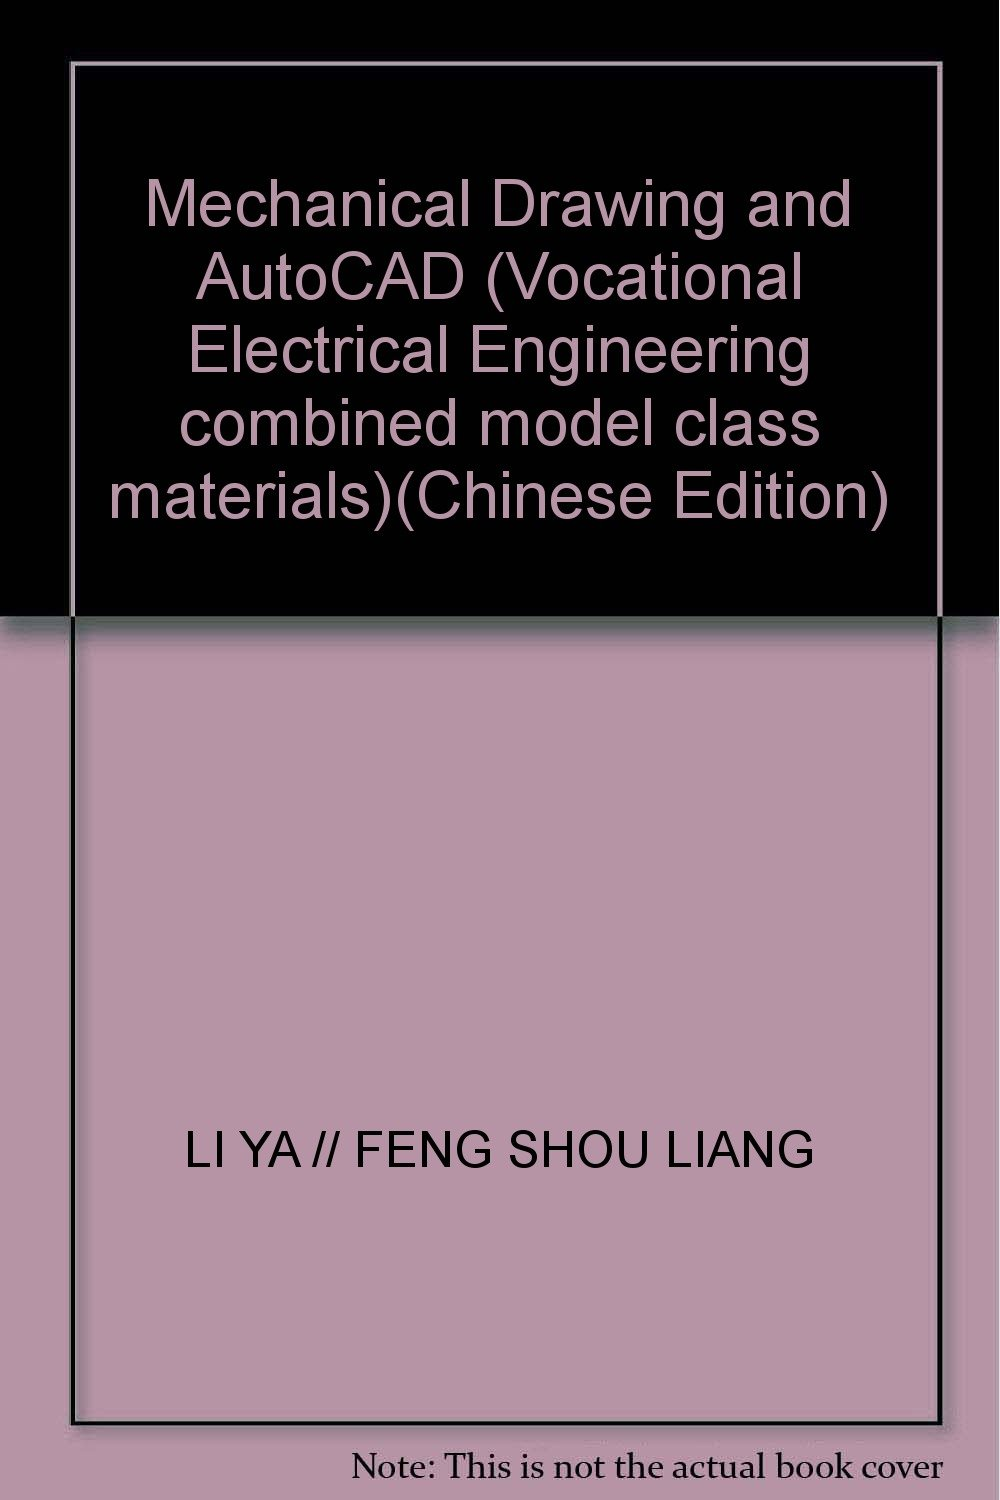 Mechanical Drawing and AutoCAD (Vocational Electrical Engineering combined model class materials)(Chinese Edition) pdf epub